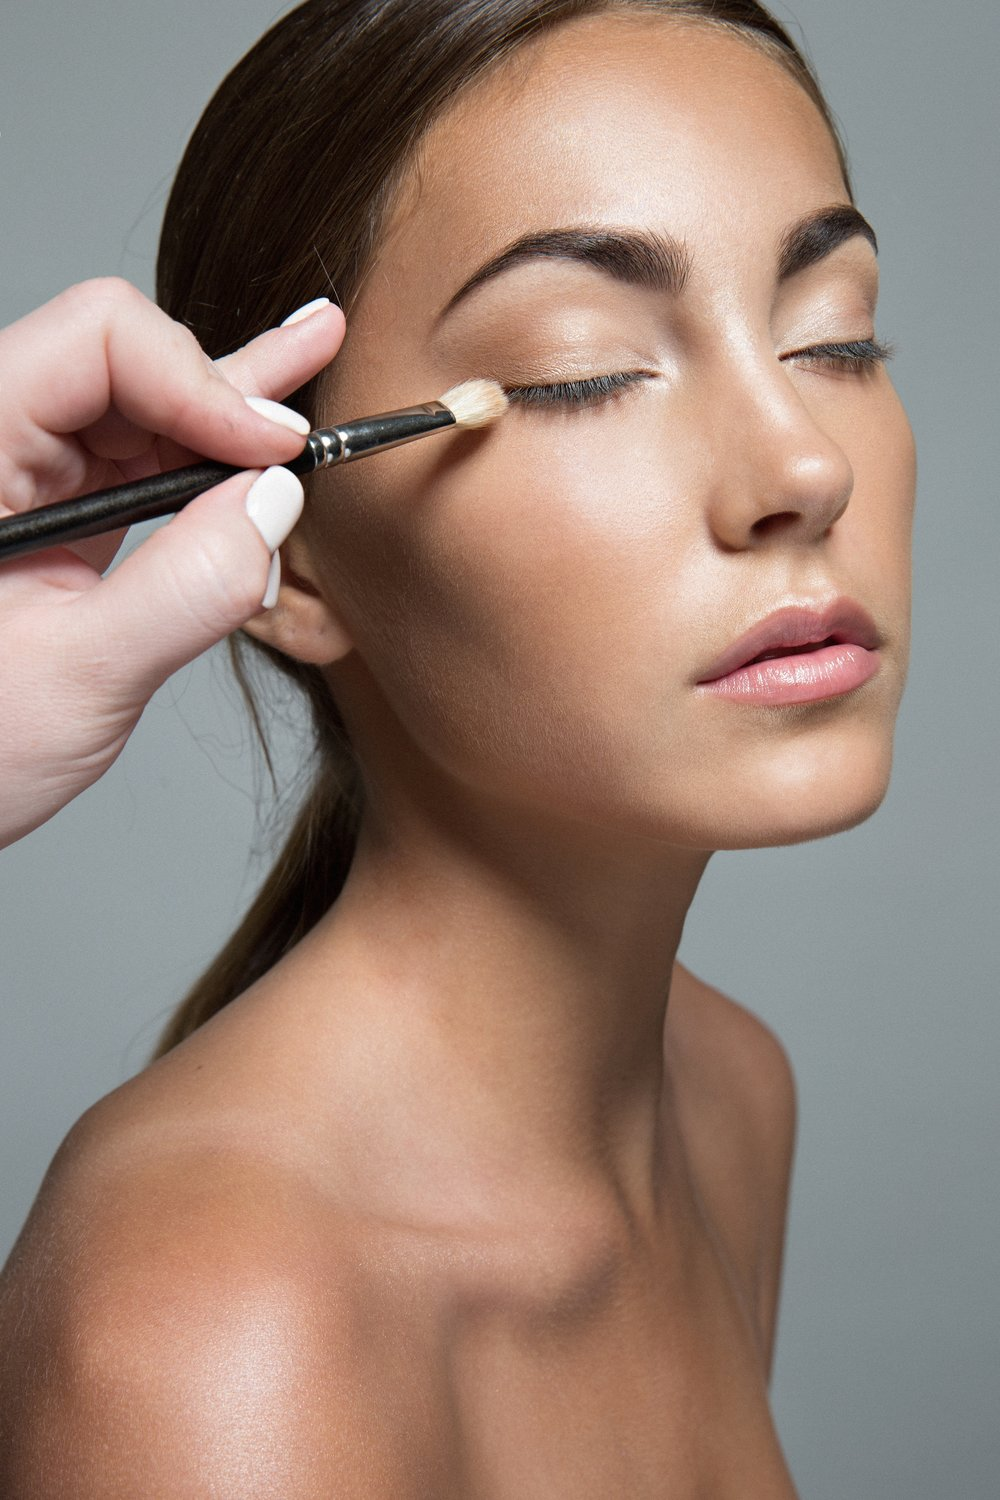 ... on the website if you're looking to learn about make up more in depth, or you're in need of a fresh new look. Bri looks forward to talk makeup with you!